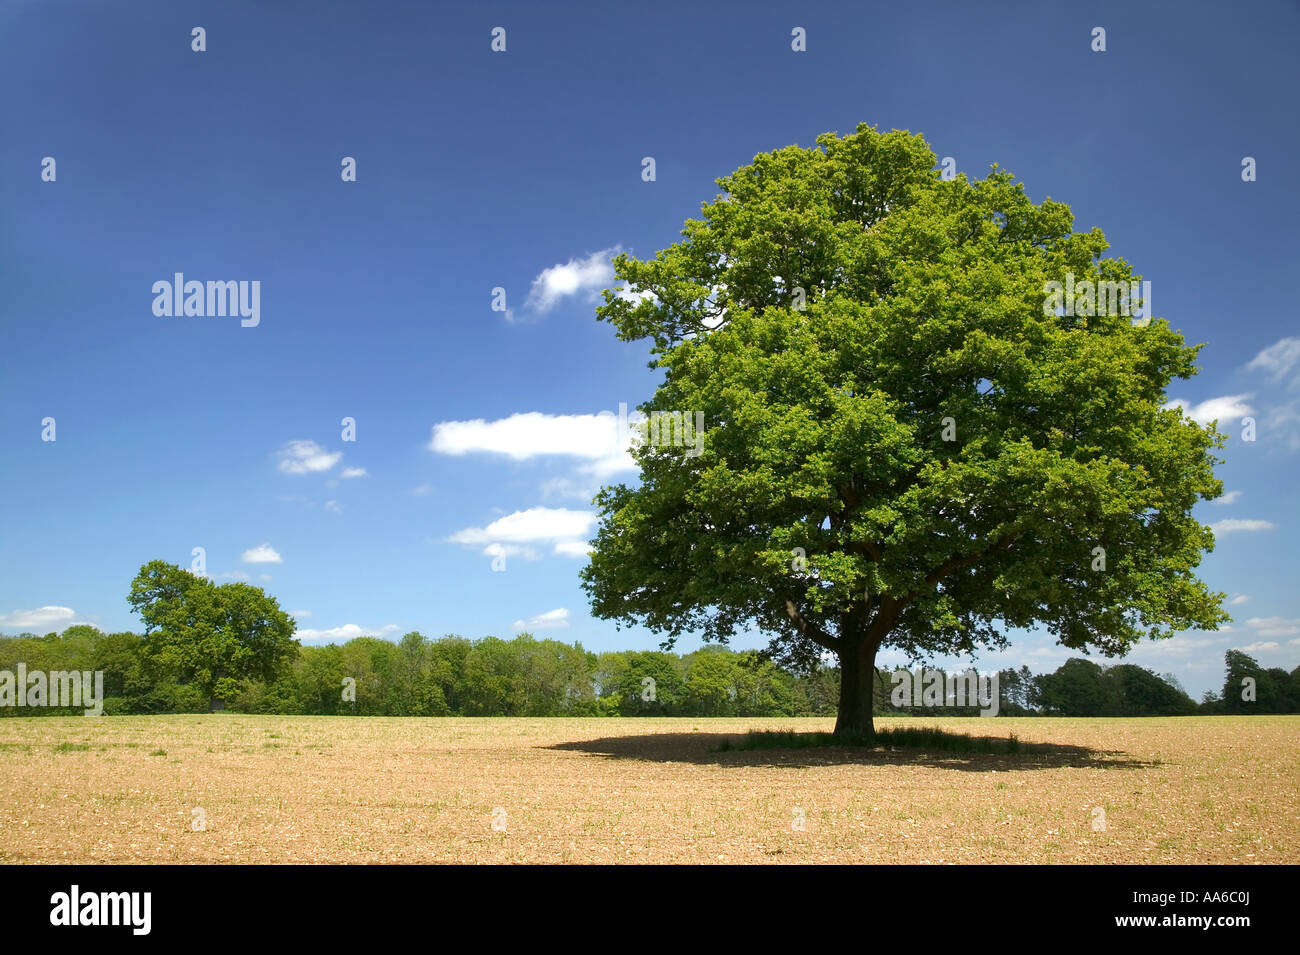 Oak tree in a field on a sunny day, taken in a field in Hampshire, England. - Stock Image